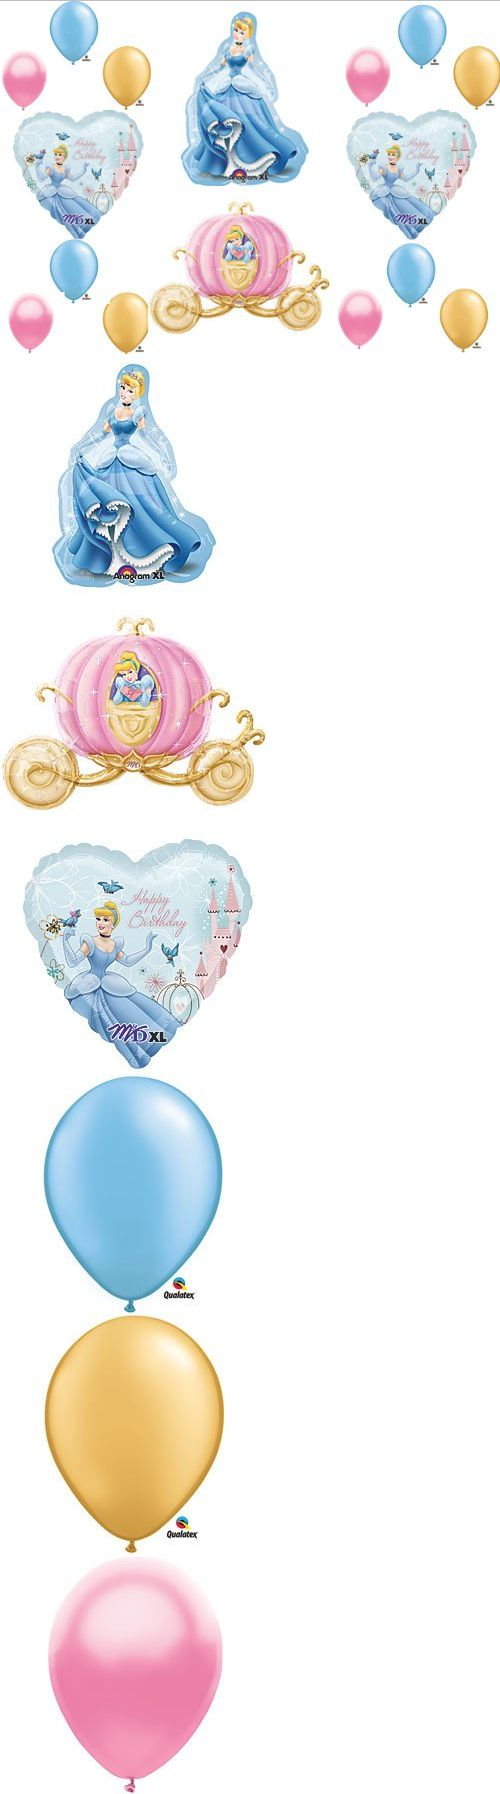 Cinderella Disney Princess Birthday Balloon Decorations Supplies 16 piece set